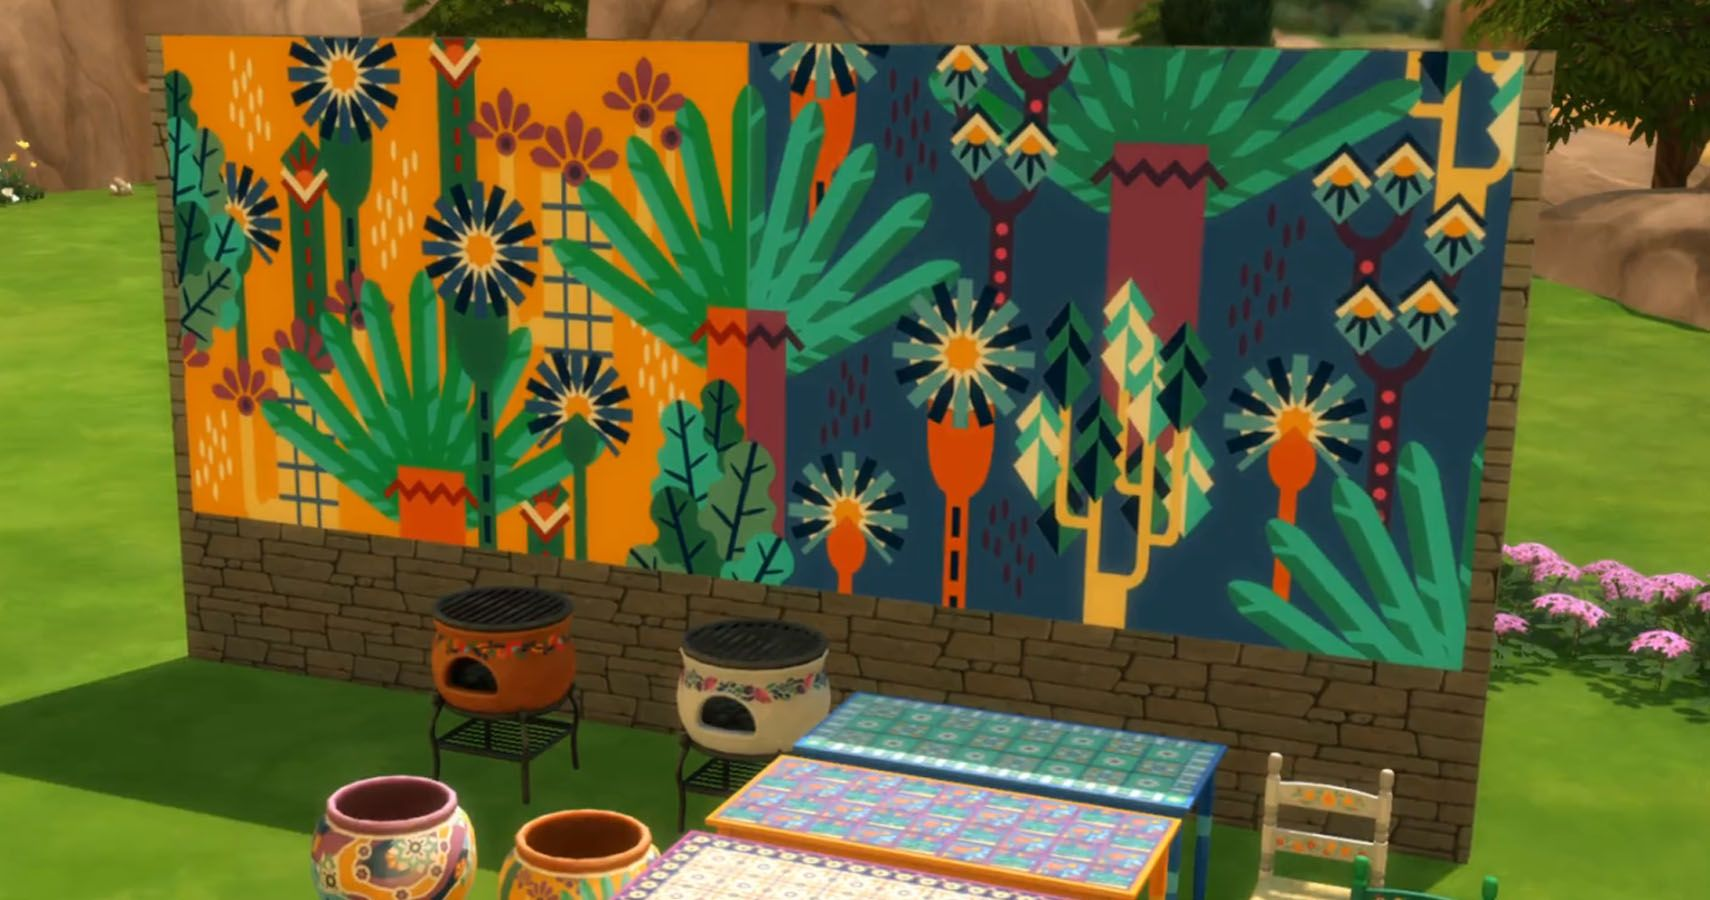 The Sims 4 Team Announces Free Hispanic Themed Content In Surprise Livestream